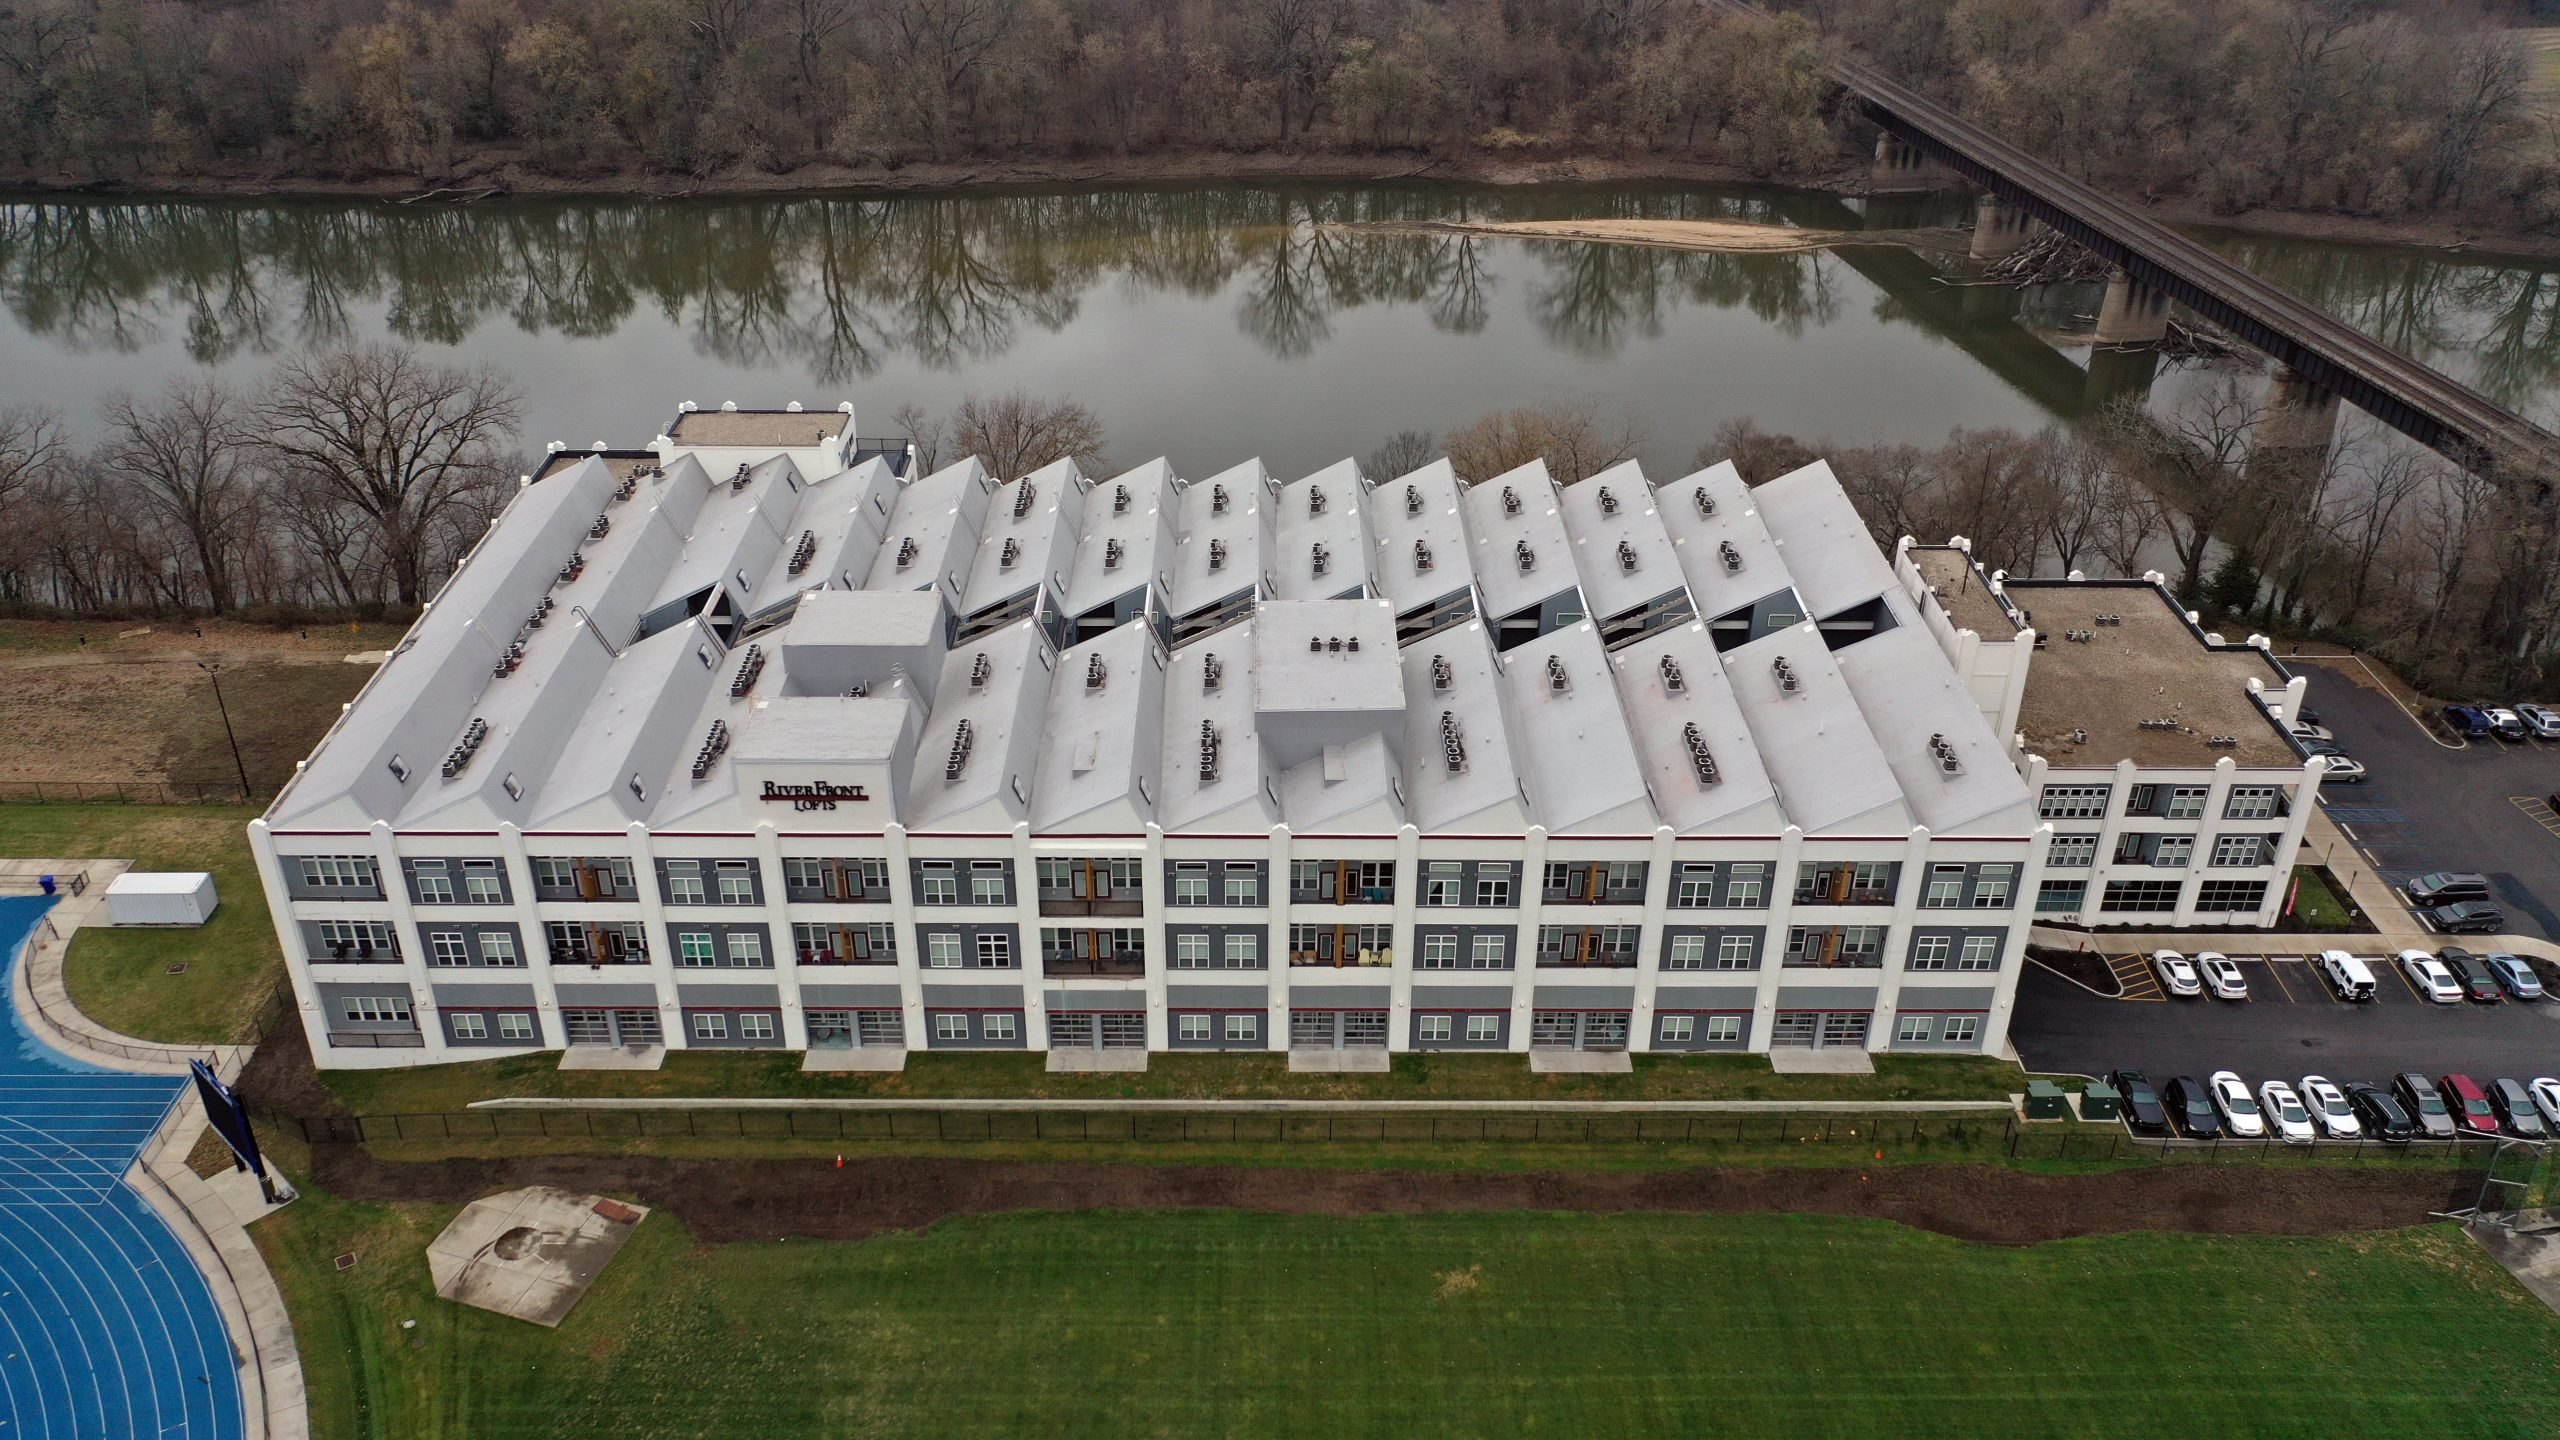 riverftont lofts commercial roofing project by ce reeve roofing in Indiana